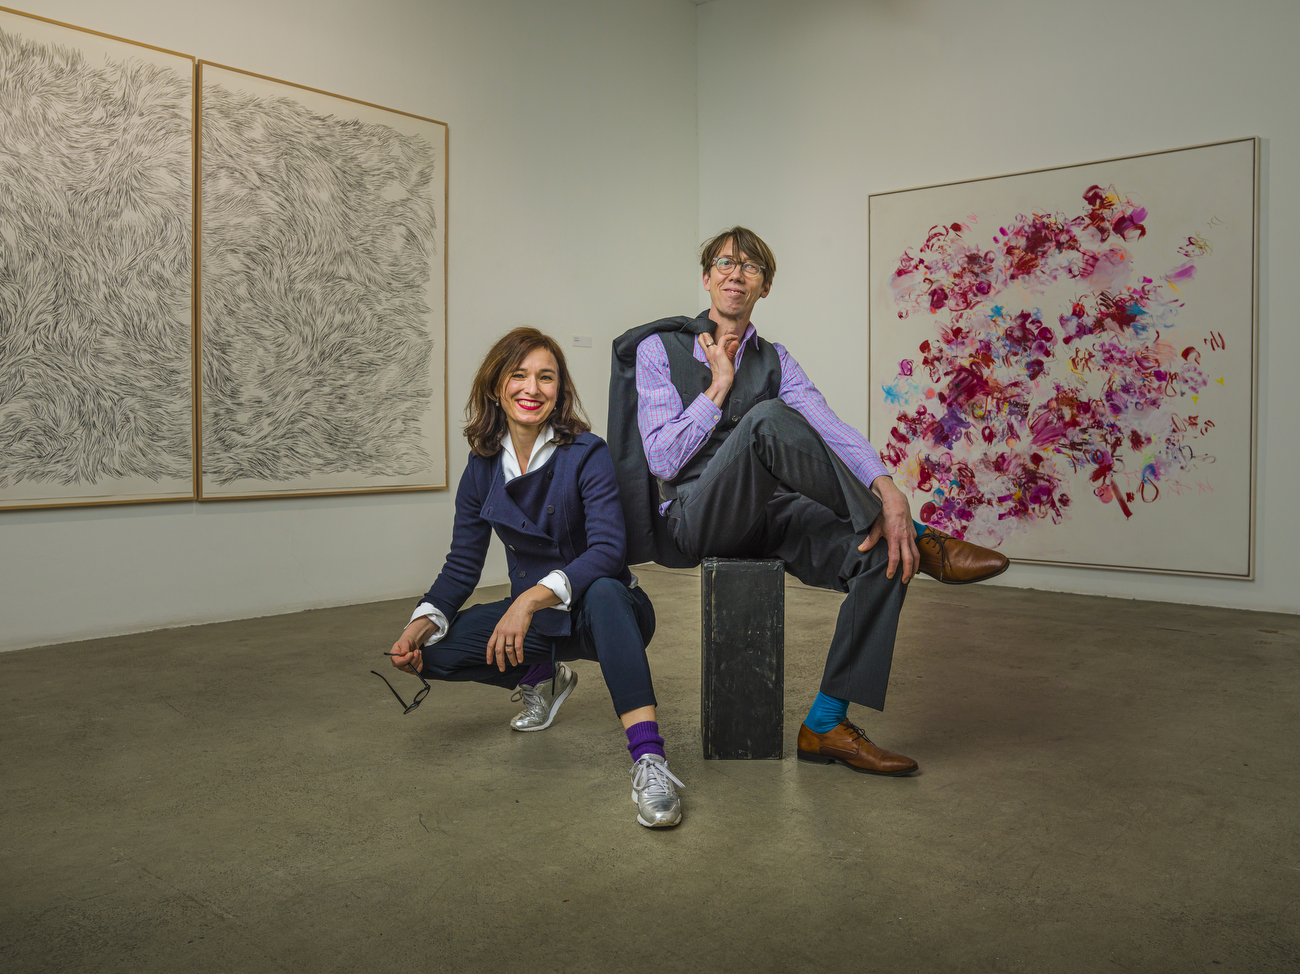 German artists Ulrike Seyboth and Ingo Fröhlich at their current exhibition entitled: {quote}Ulrike Seyboth & Ingo Fröhlich   {quote}I draw the time, you paint the moment{quote}.The exhibition runs from 14.2. - 28.3.2021